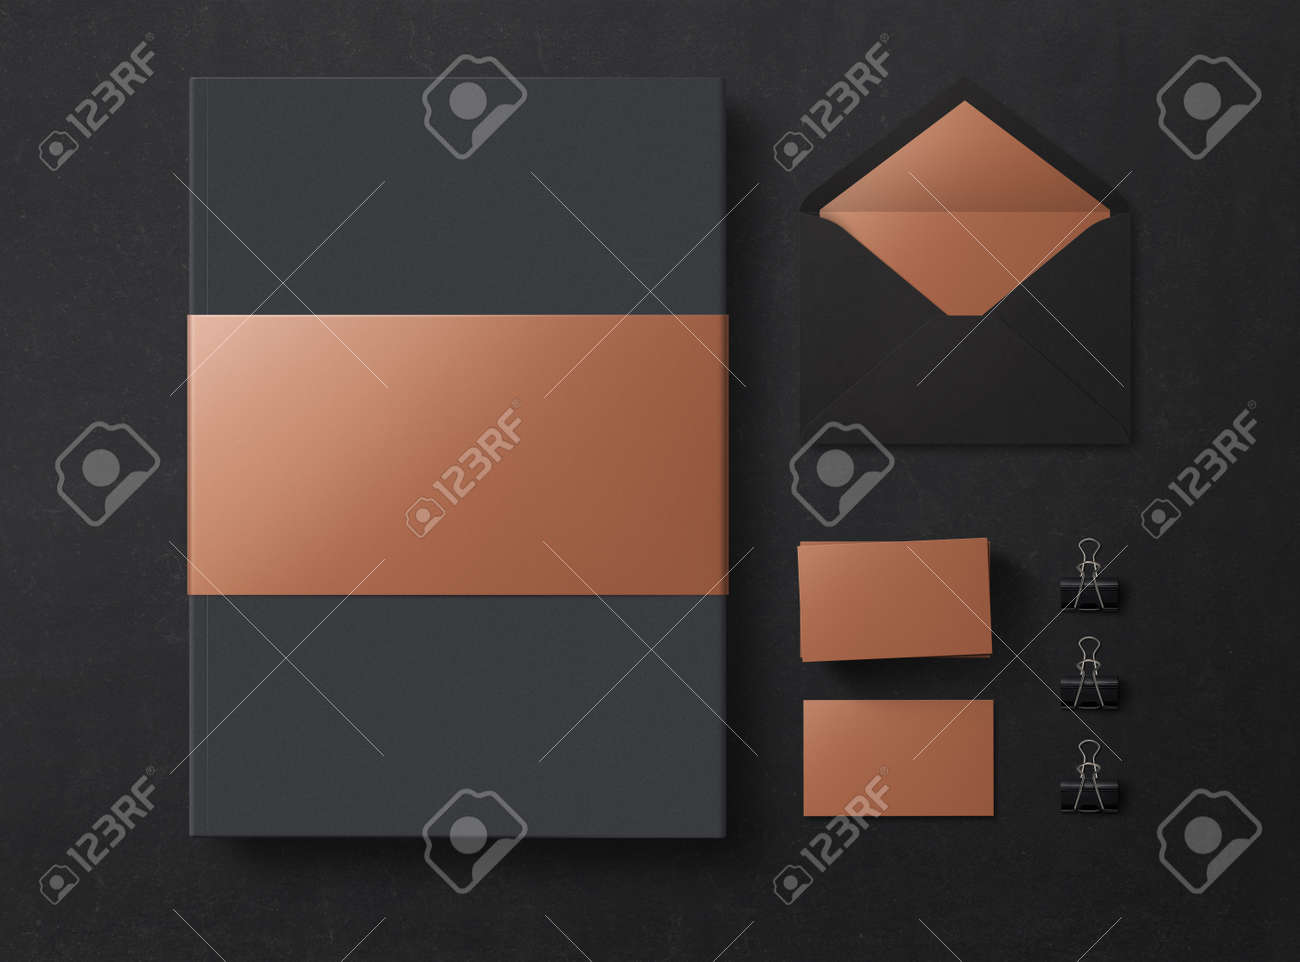 Mock up. Set of mock up elements on black background. Empty objects to place your design. Flat lay. Top view. 3D illustration. - 150177817